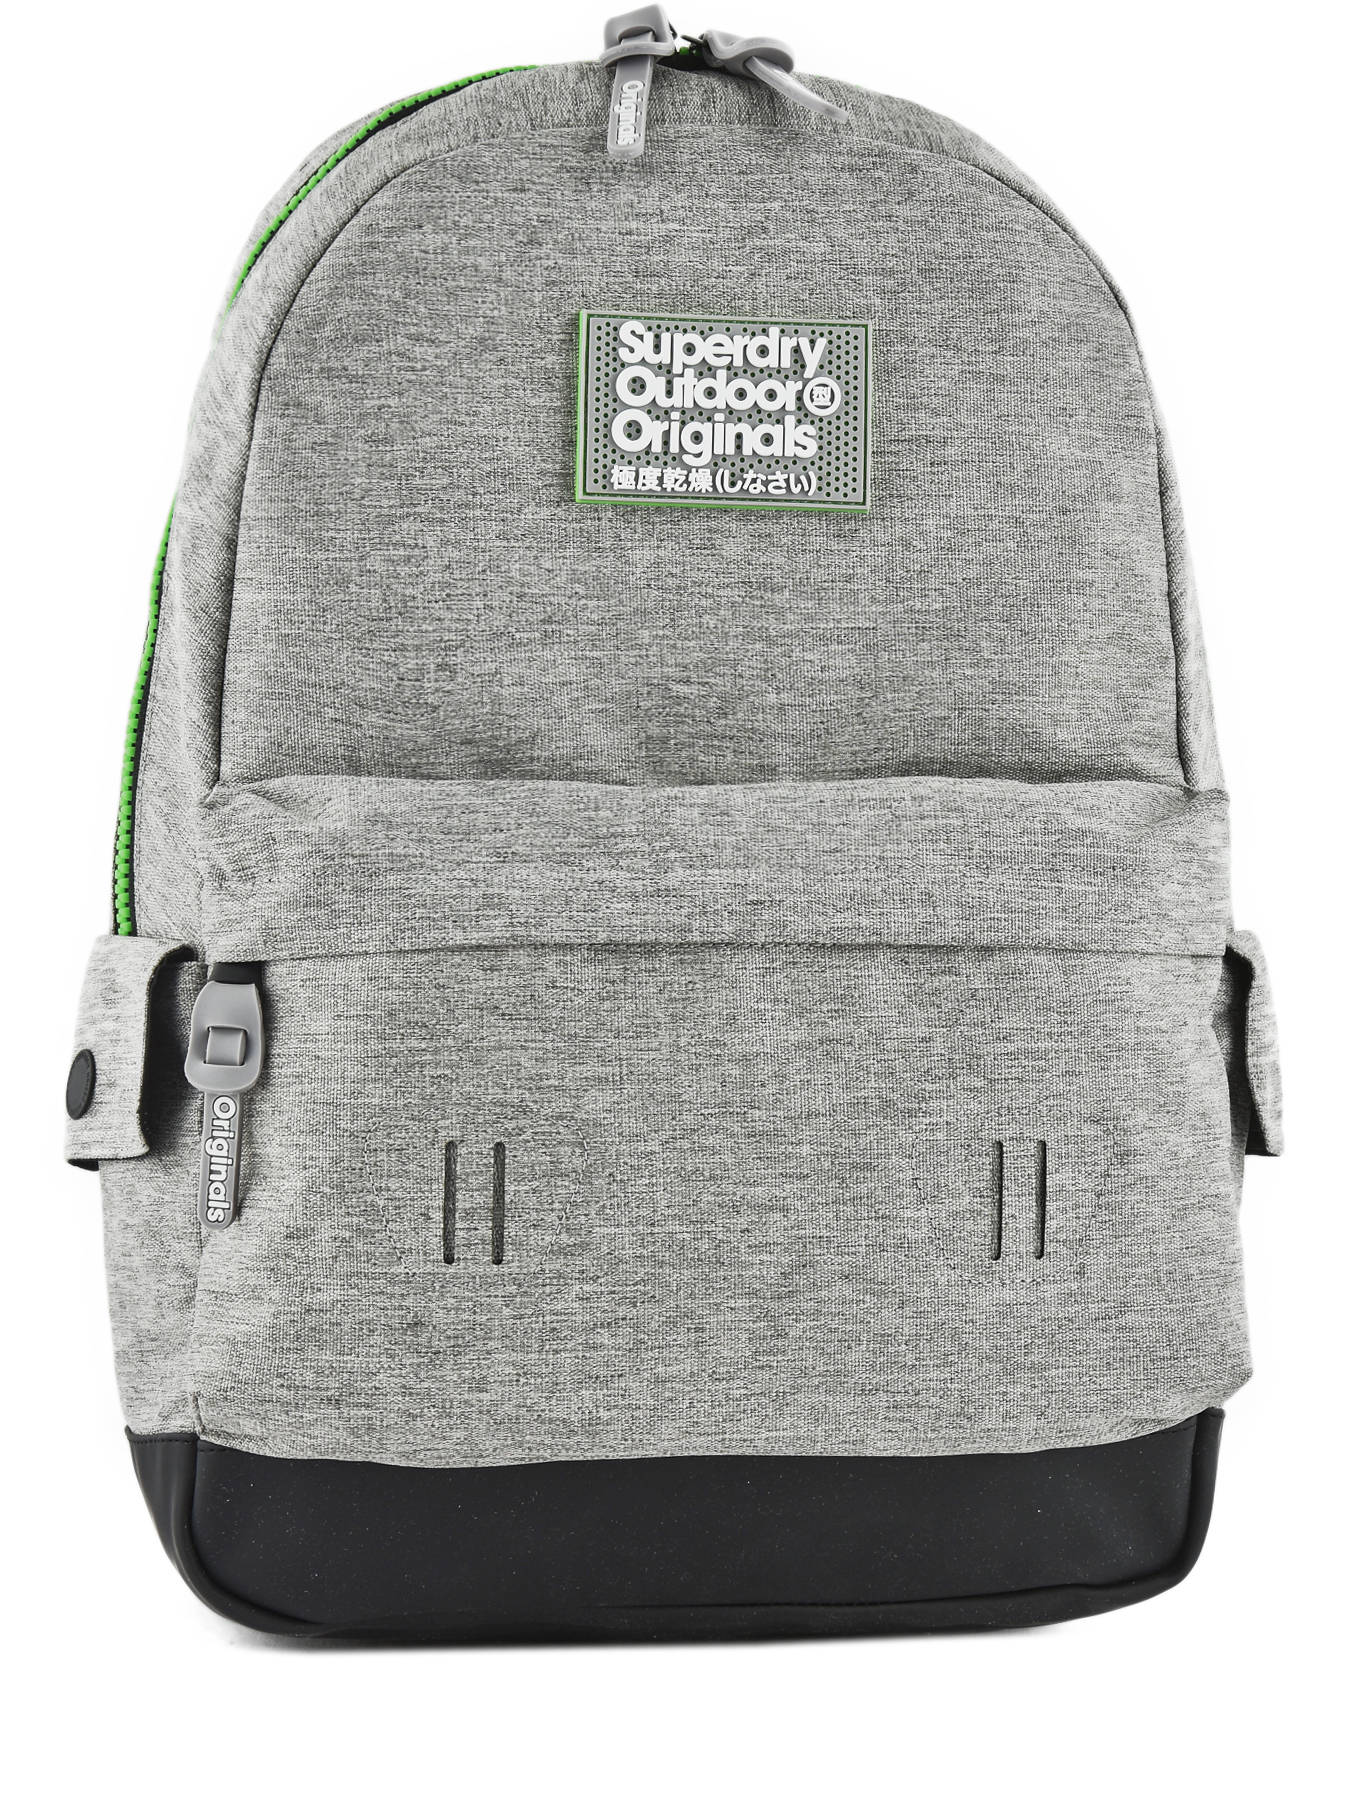 Backpack 1 Compartment Superdry Gray backpack men M91001MR ... 6644a4a024a20